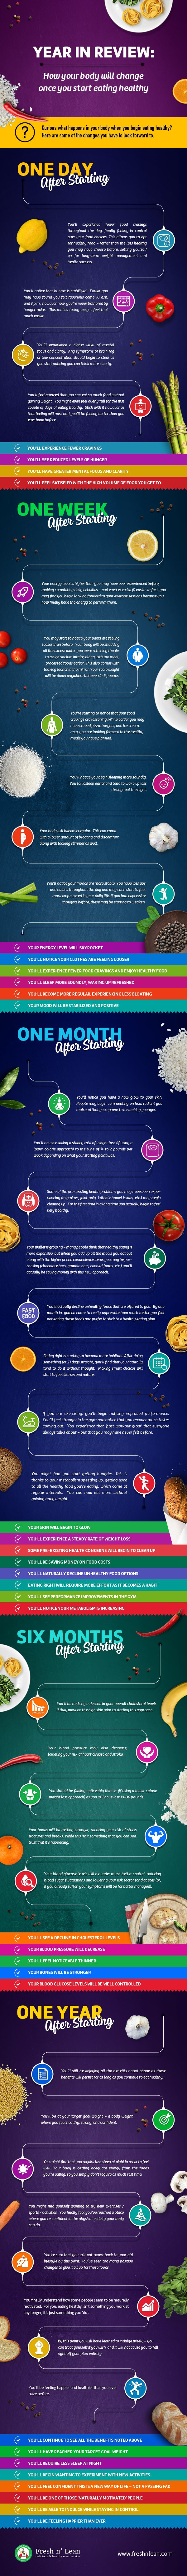 How Your Body Will Change When Eating Healthy